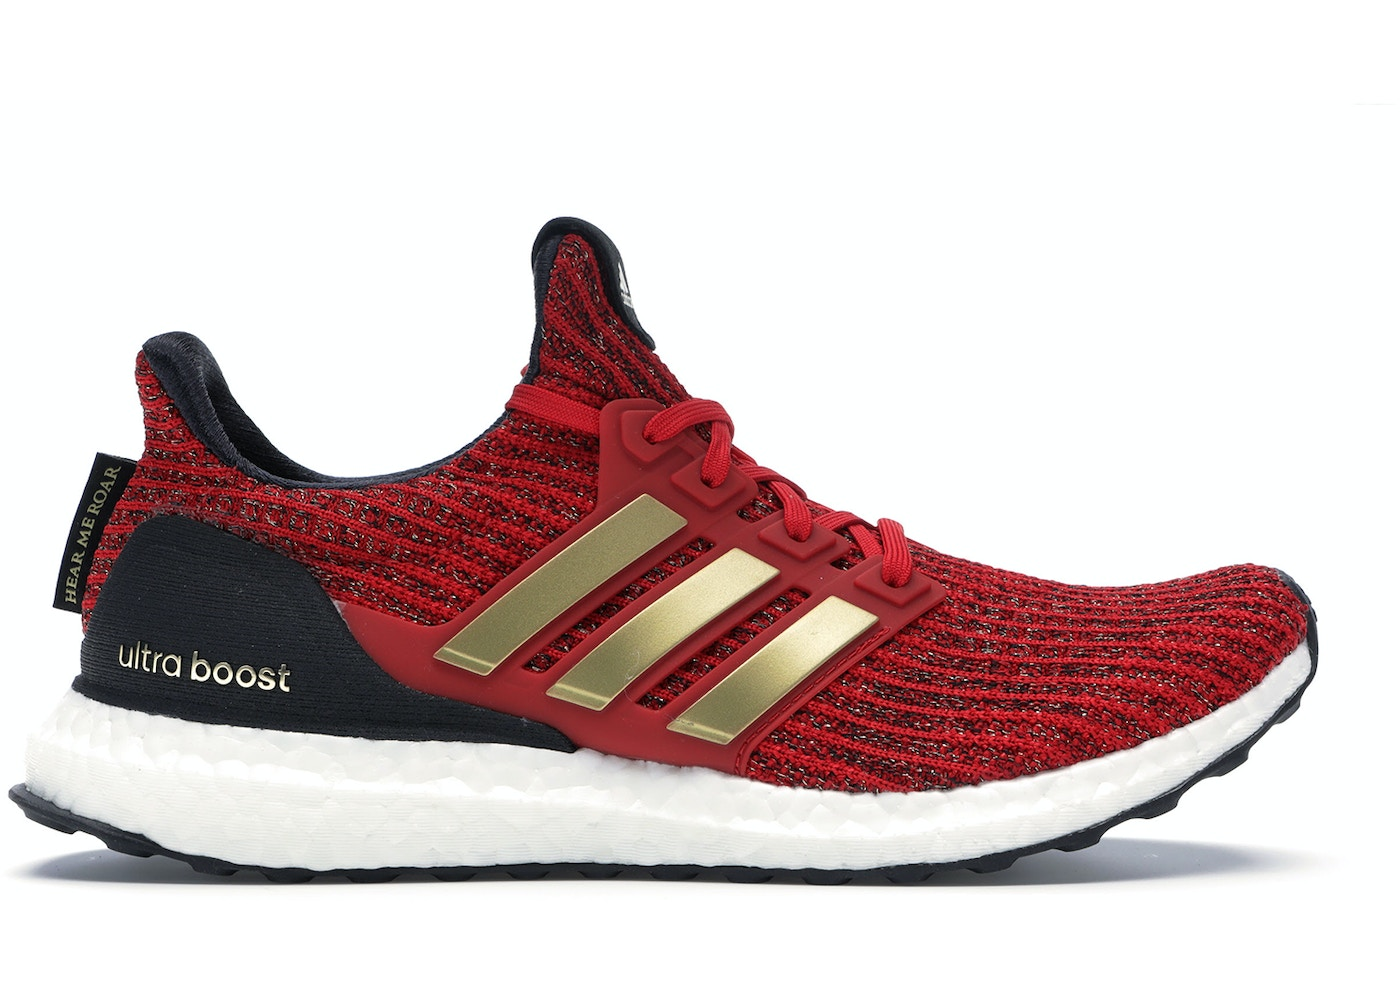 acd82685 adidas Ultra Boost 4.0 Game of Thrones House Lannister (W) - EE3710